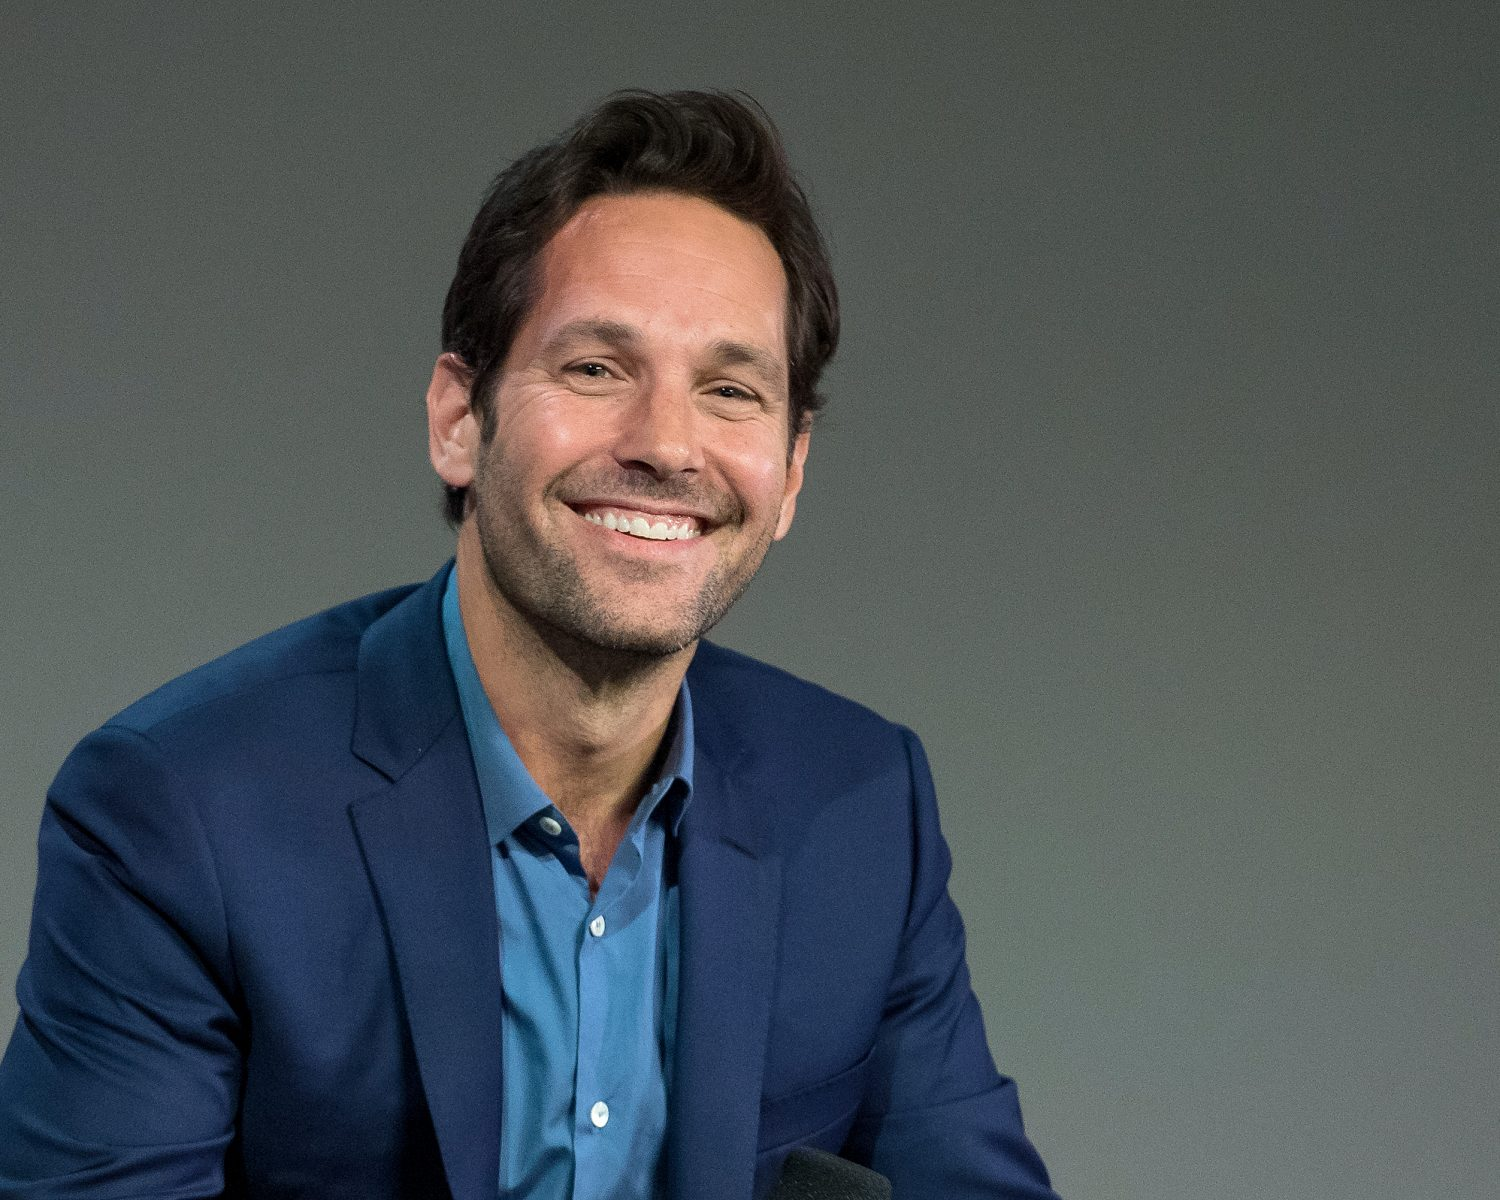 paul rudd was supposed to play this character in bridesmaids